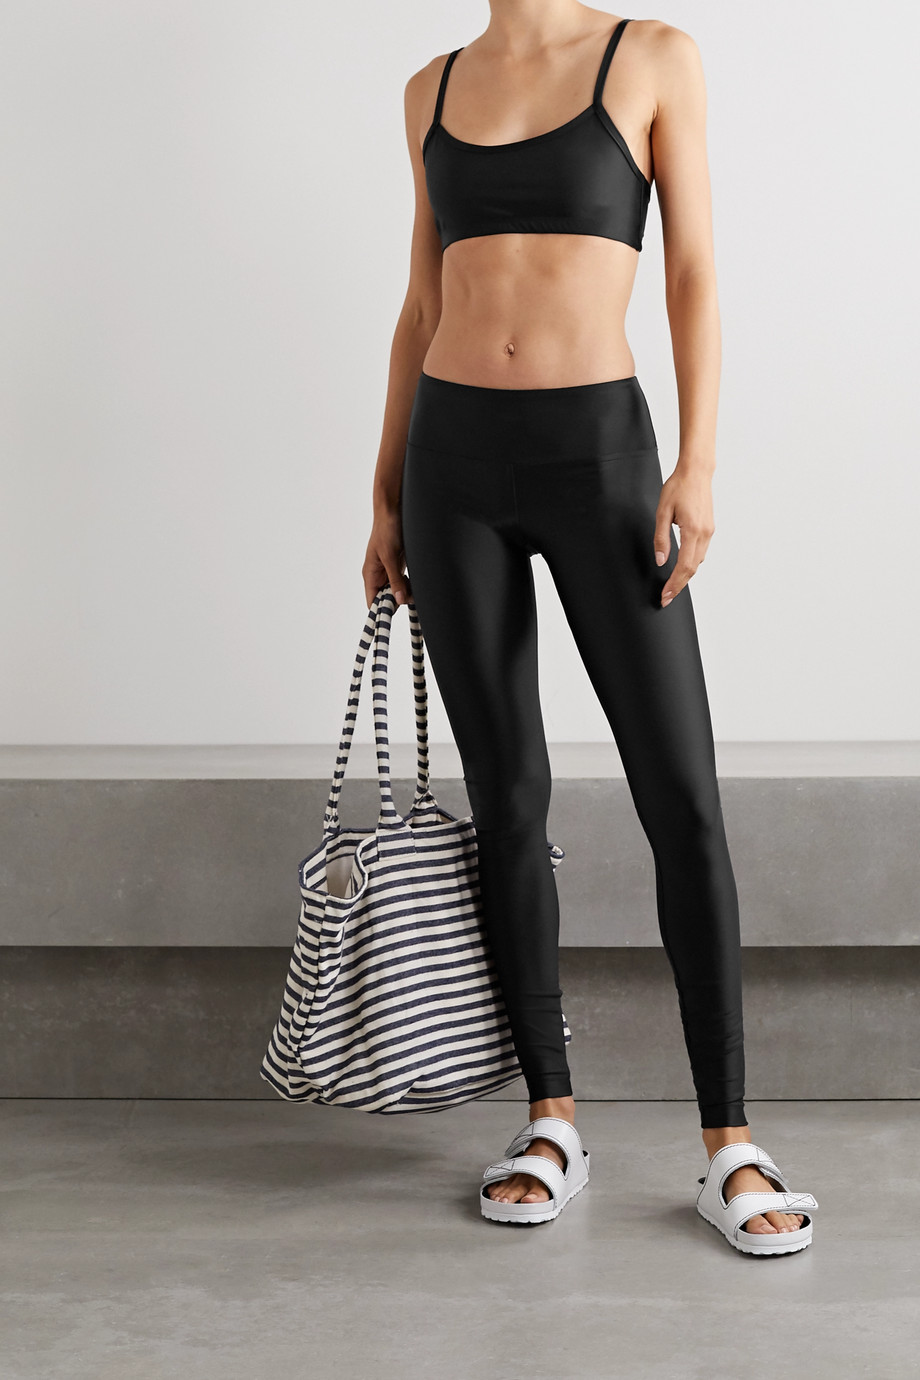 COVER + NET SUSTAIN stretch recycled swim leggings